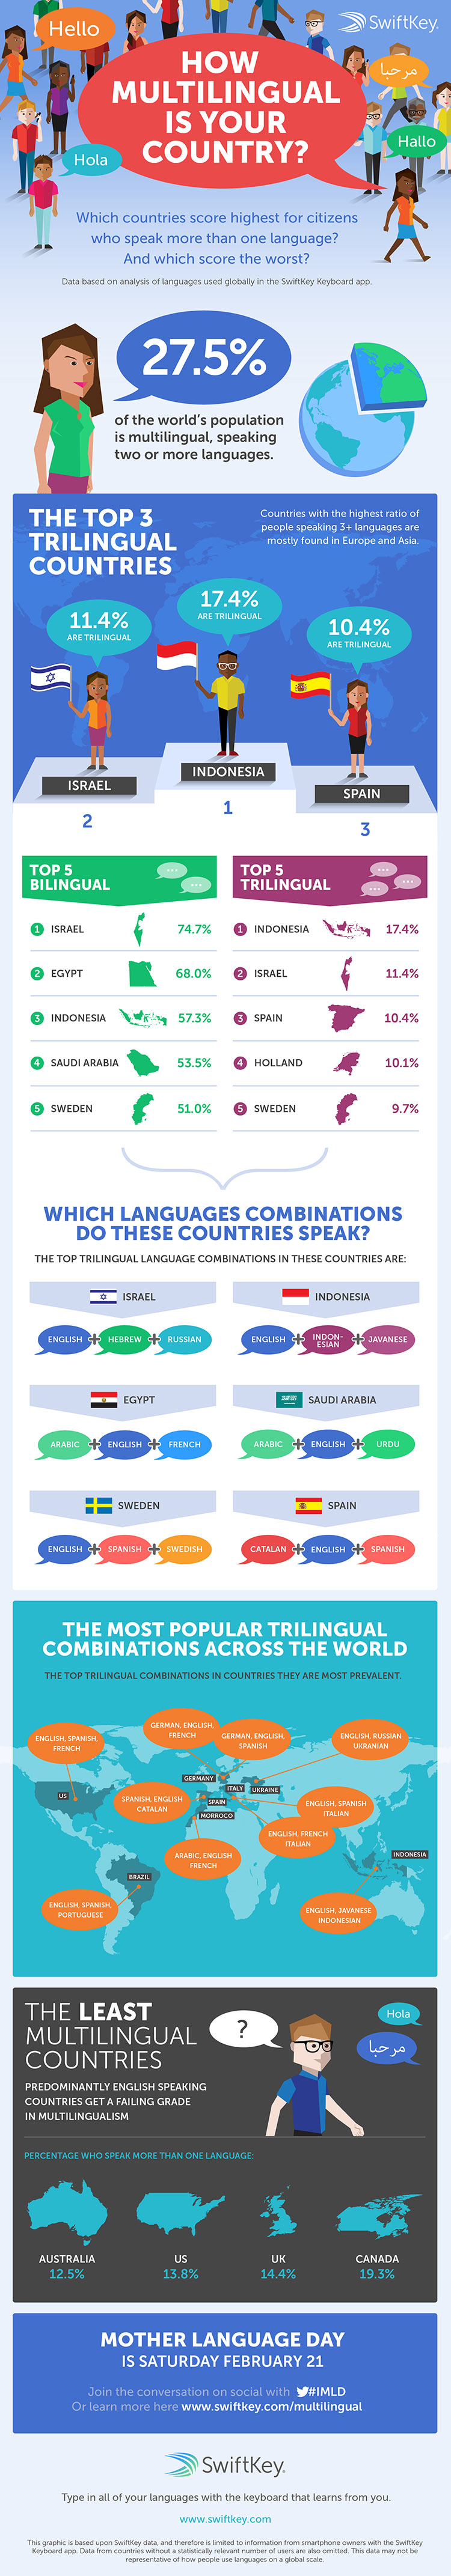 http://www.wowshack.com/indonesia-ranks-as-the-top-trilingual-country-in-the-world/